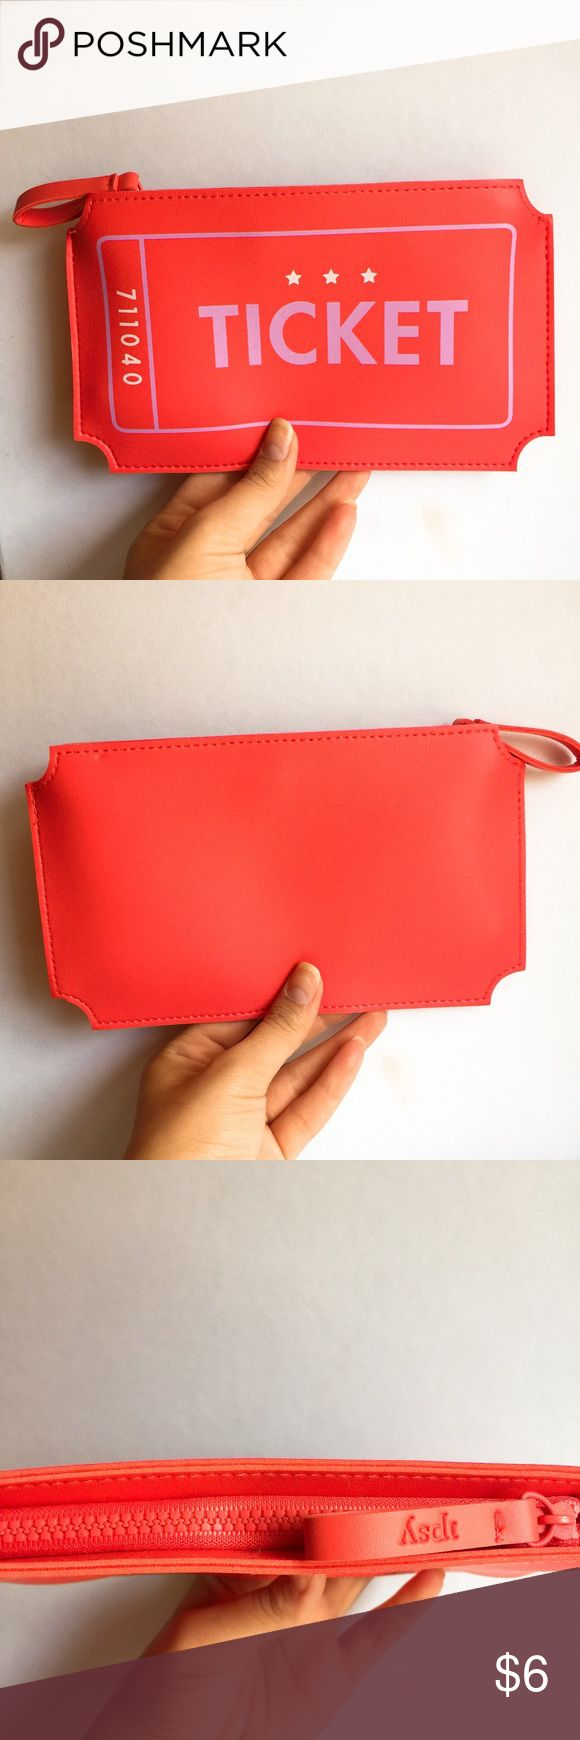 Ipsy Movie Ticket Makeup Bag Brand new Ipsy makeup bag in coral. Feel free to bundle! Ipsy Bags Cosmetic Bags & Cases